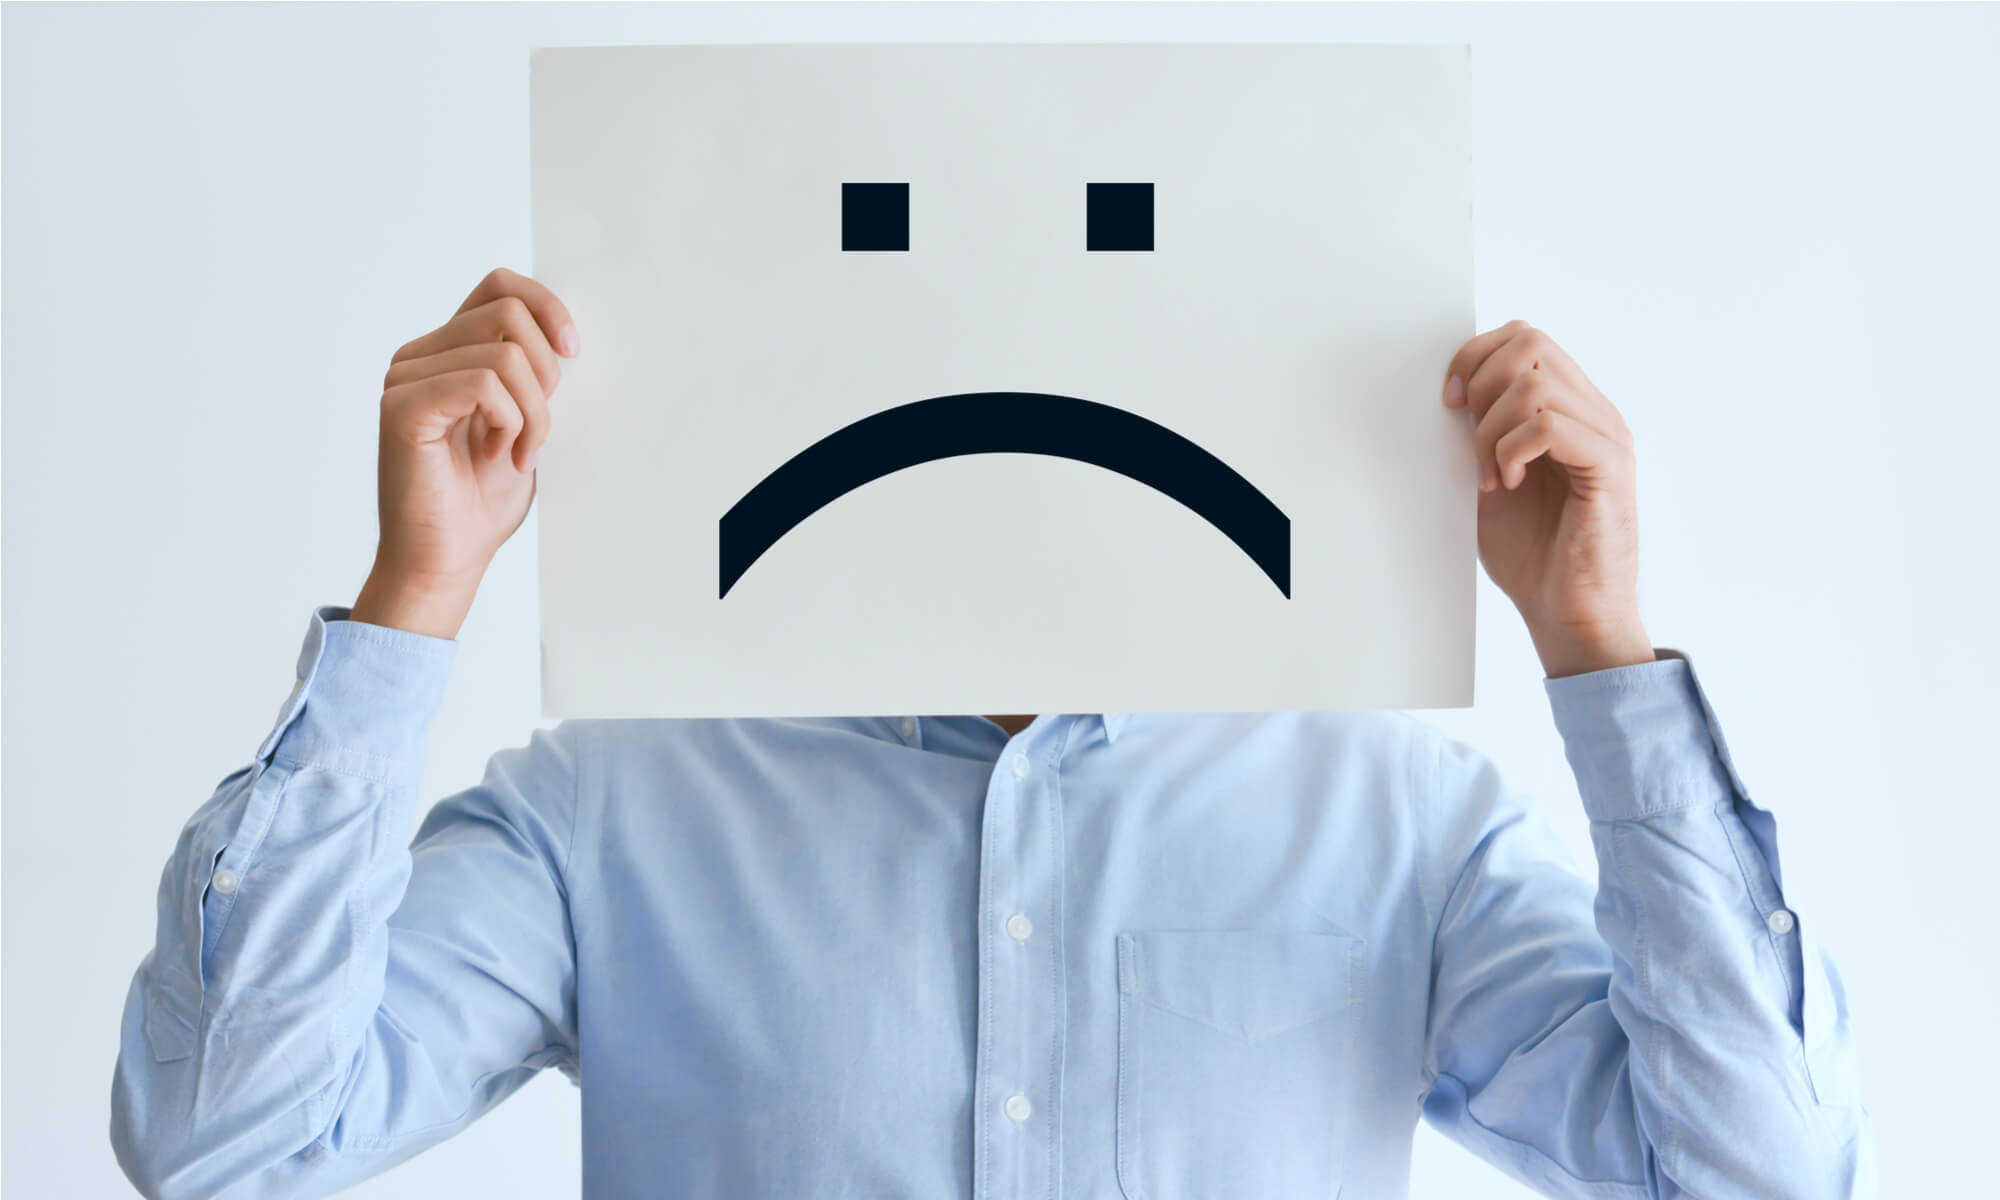 How to Deal with an Unhappy Customer